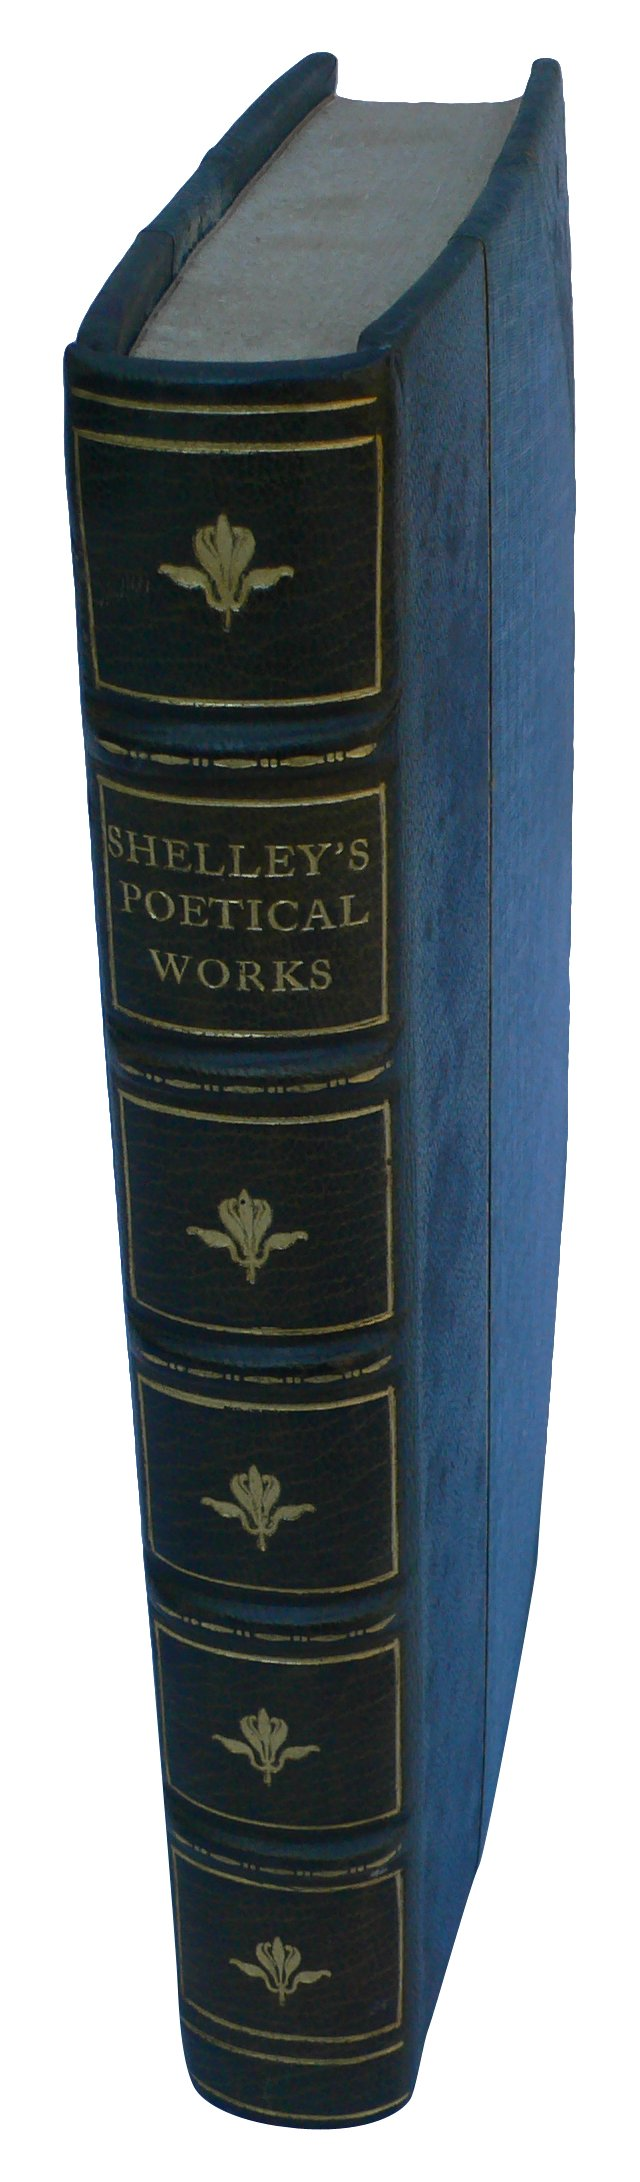 Complete Poetical Works of Shelley